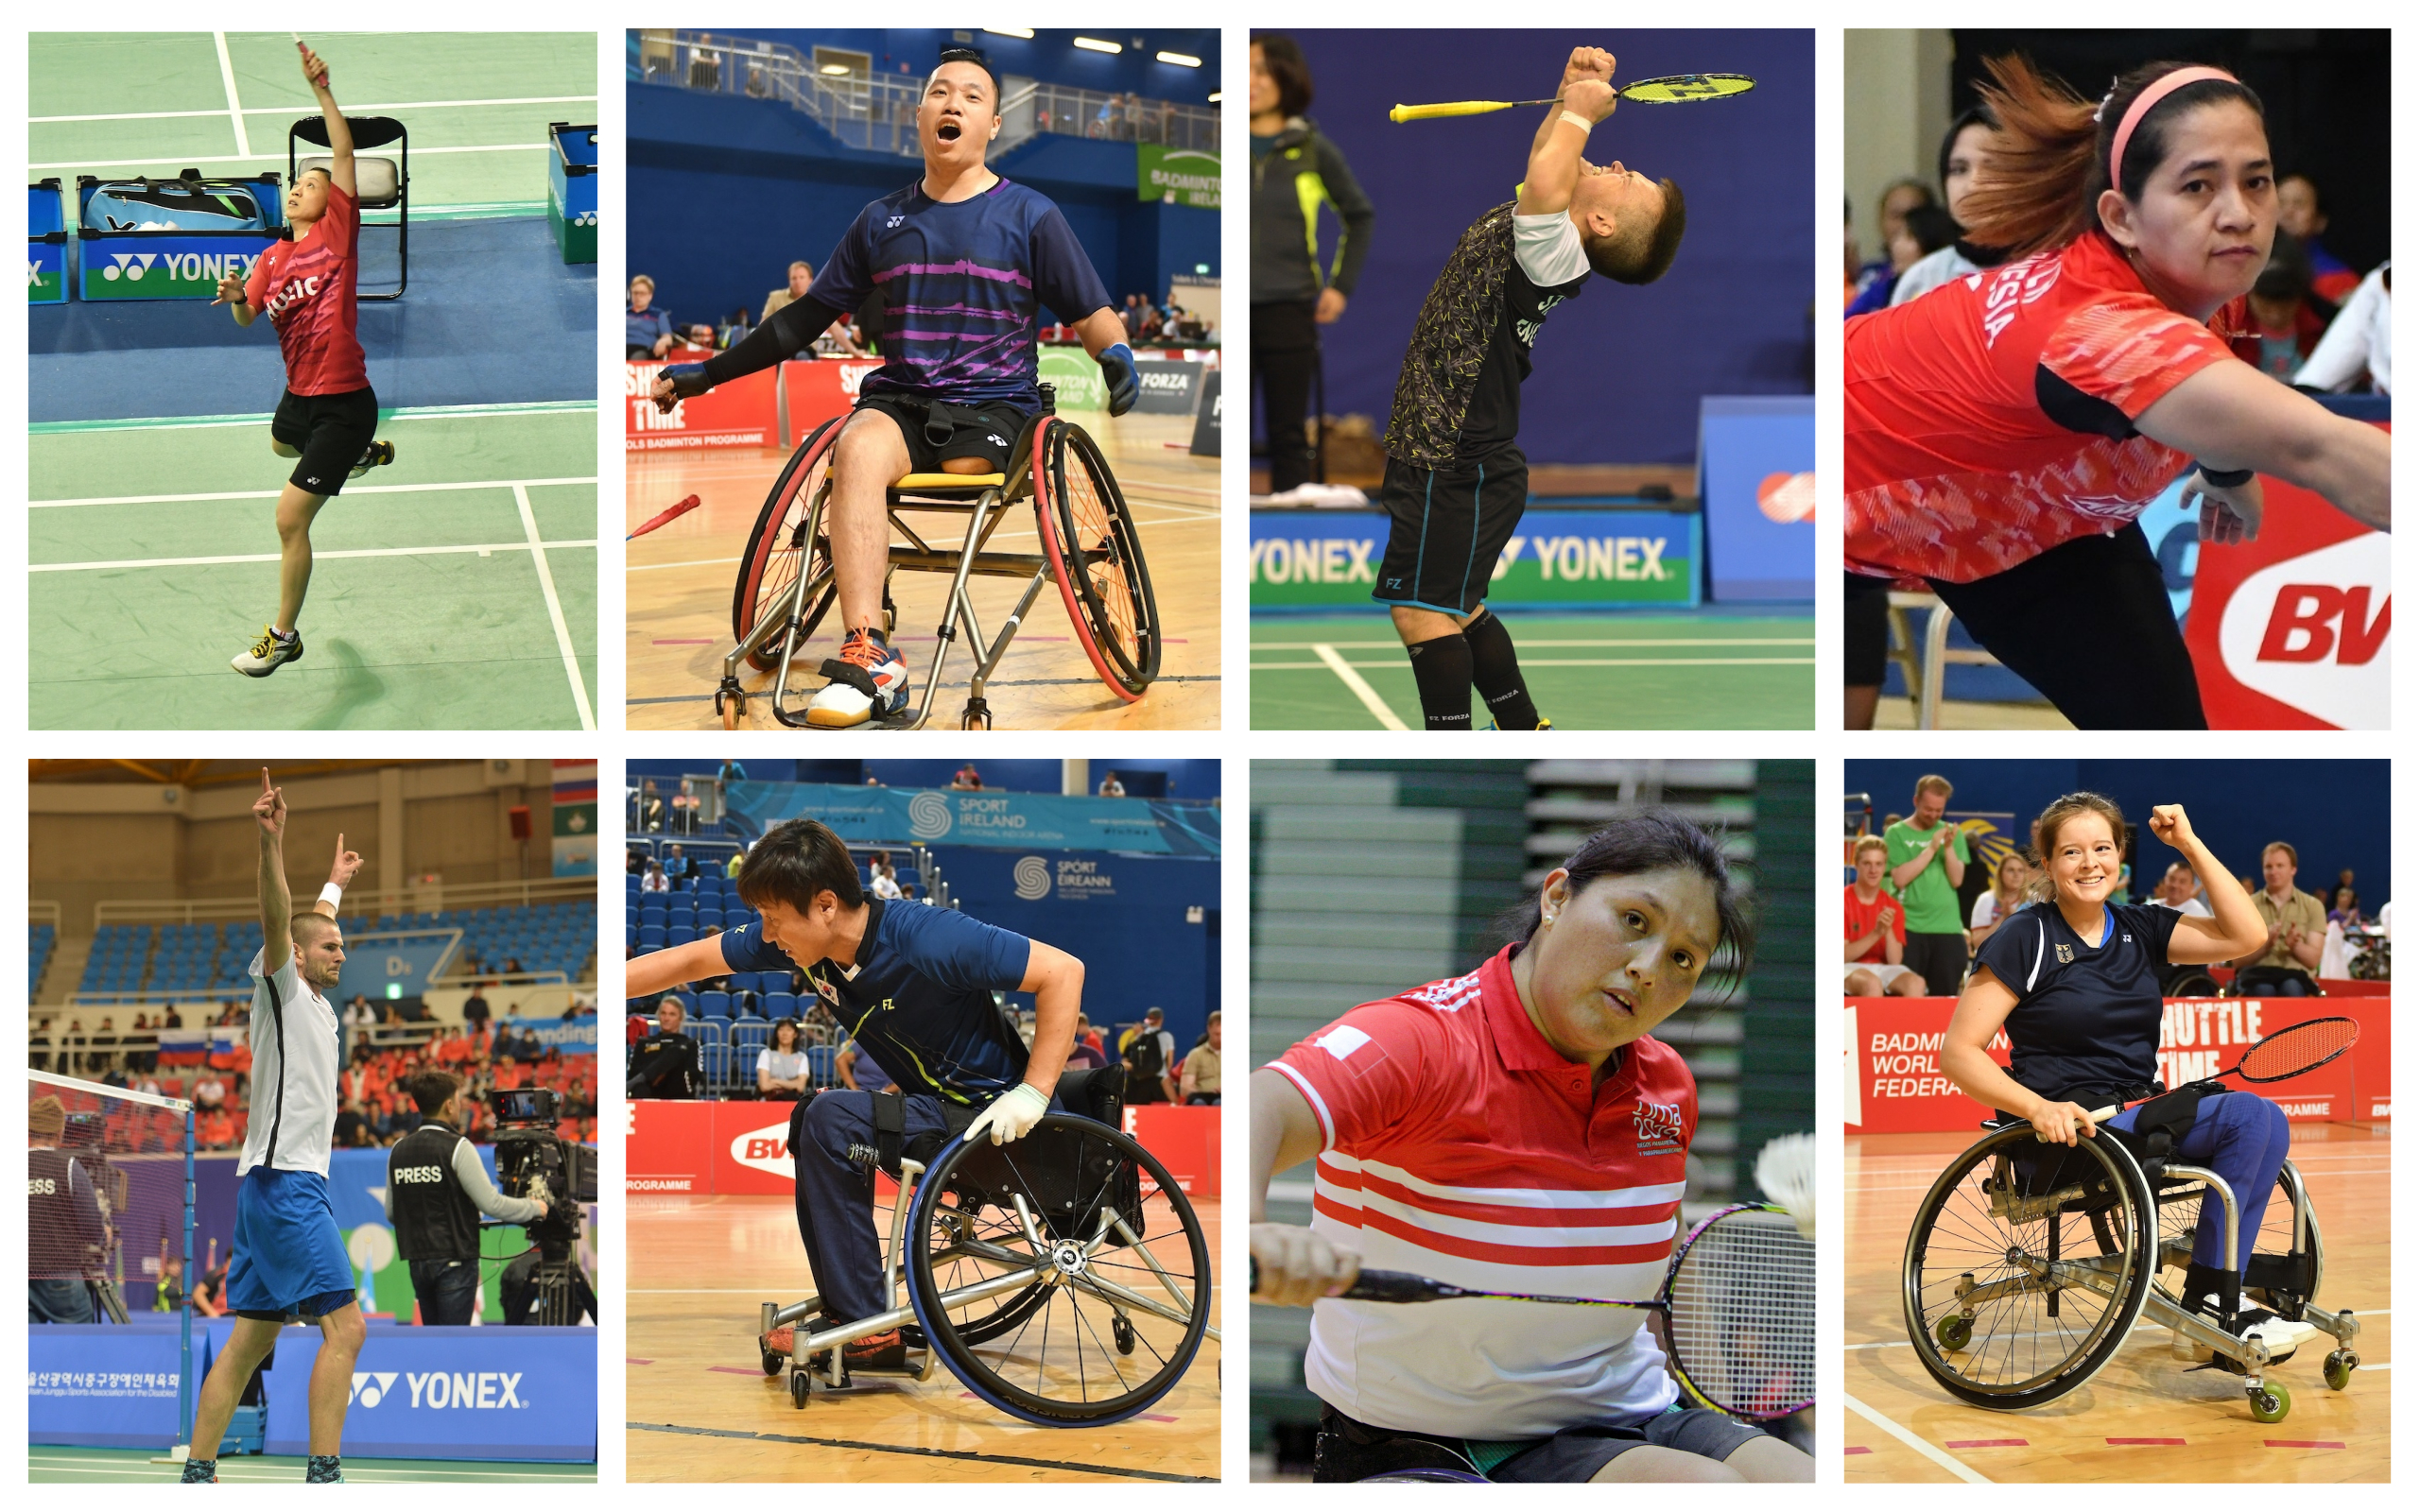 Basel 2019: IPC announces Para badminton Ones to Watch - International Paralympic Committee